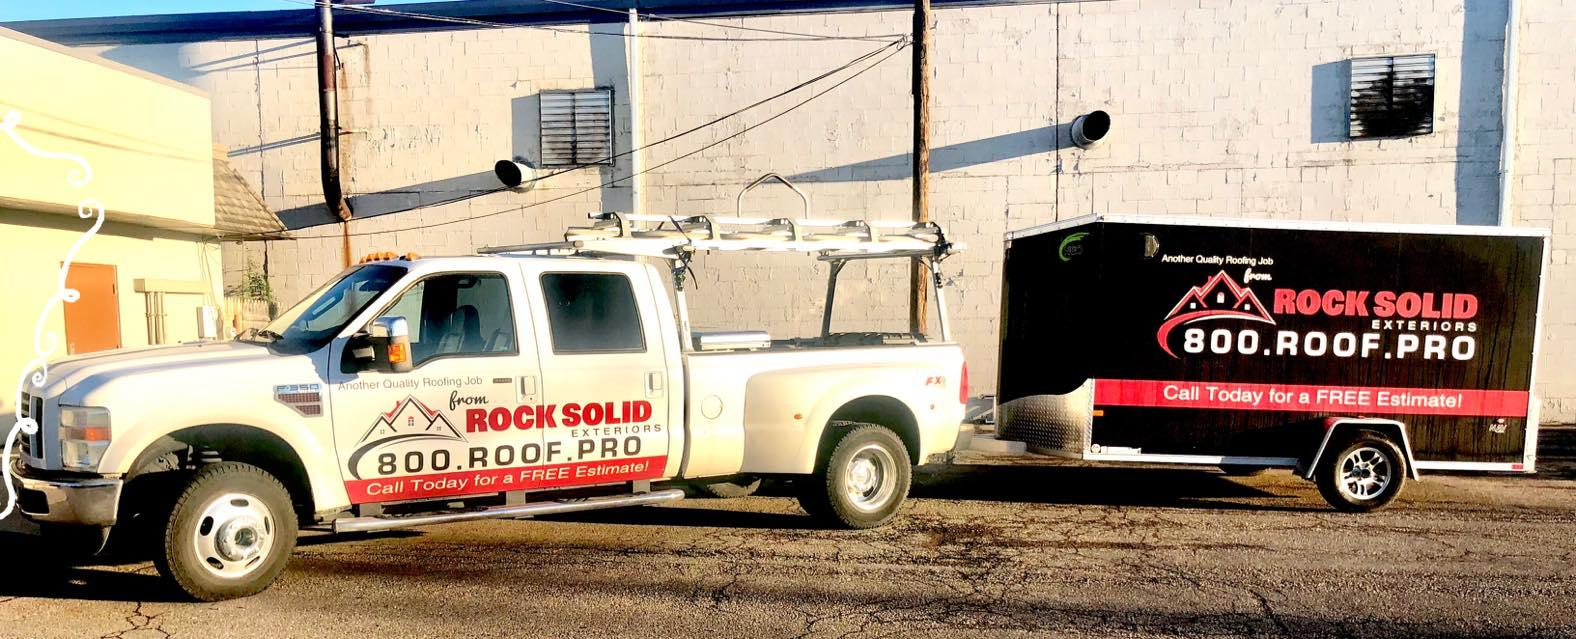 Rock Solid Exteriors - Roofers and Siding Contractors image 26